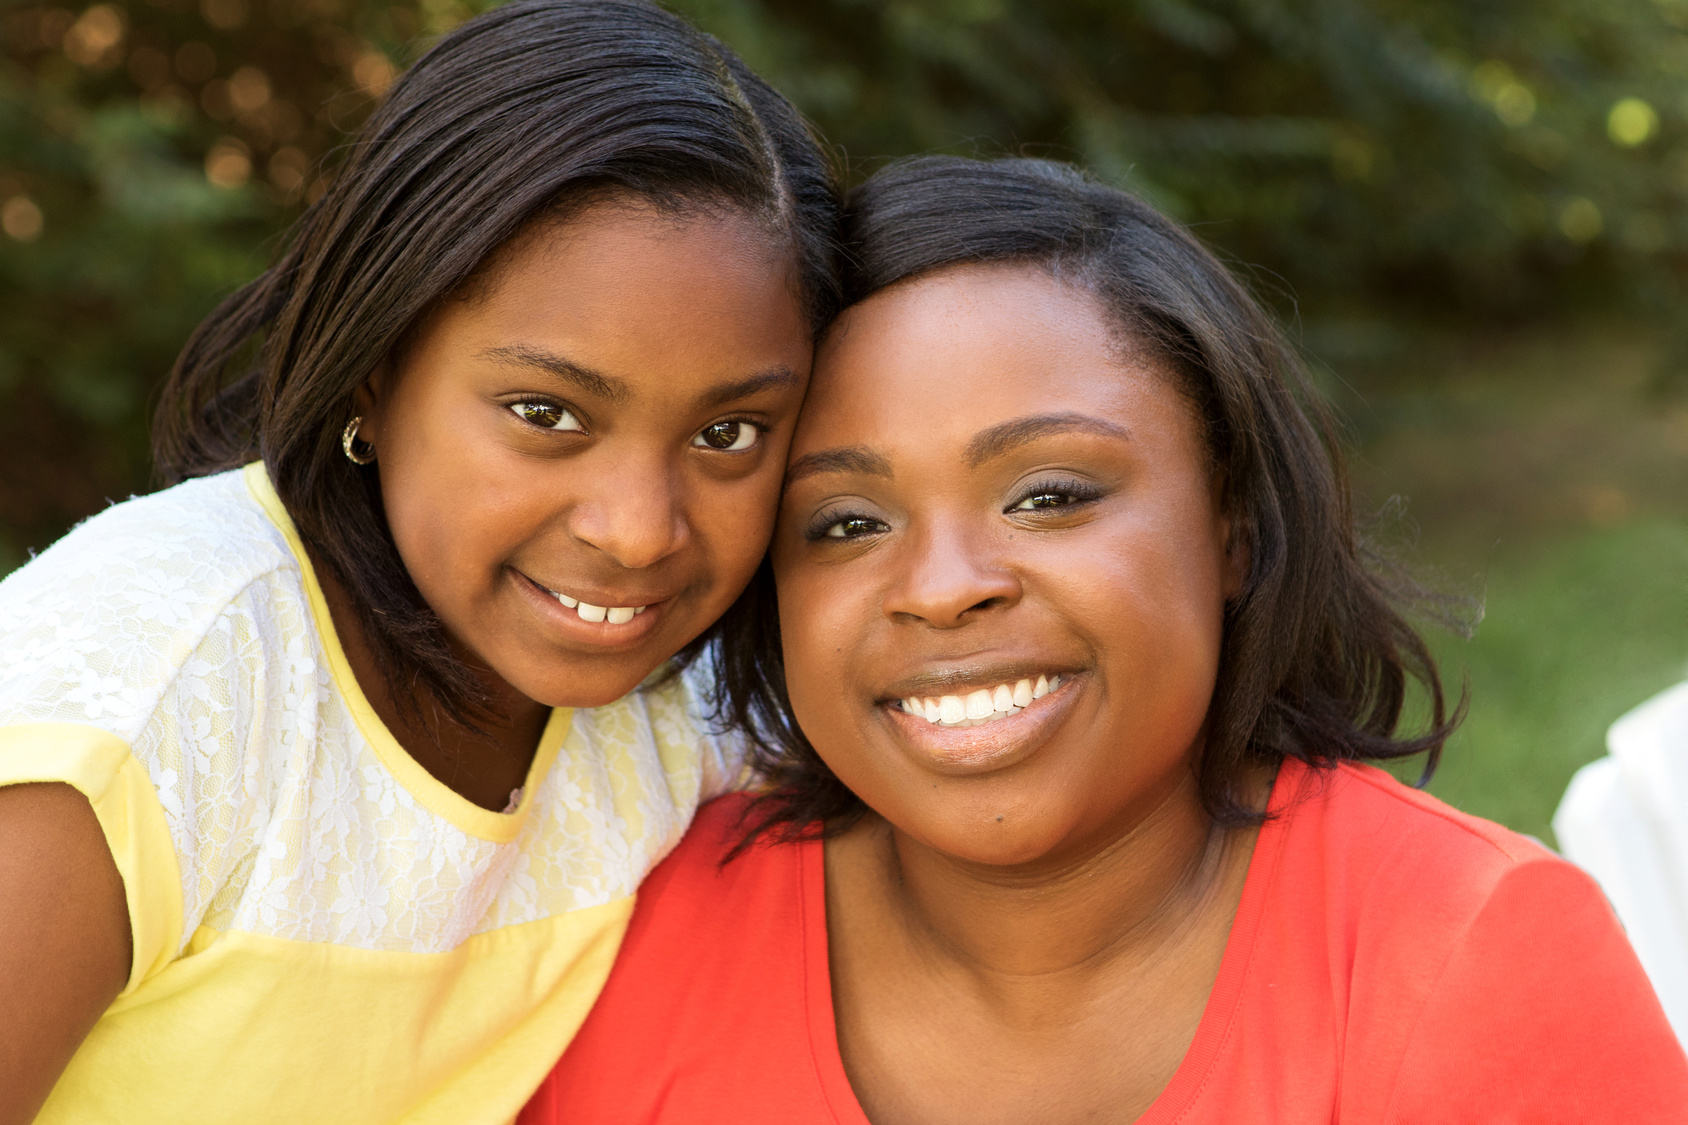 Portrait of an African American mother and her daughter.